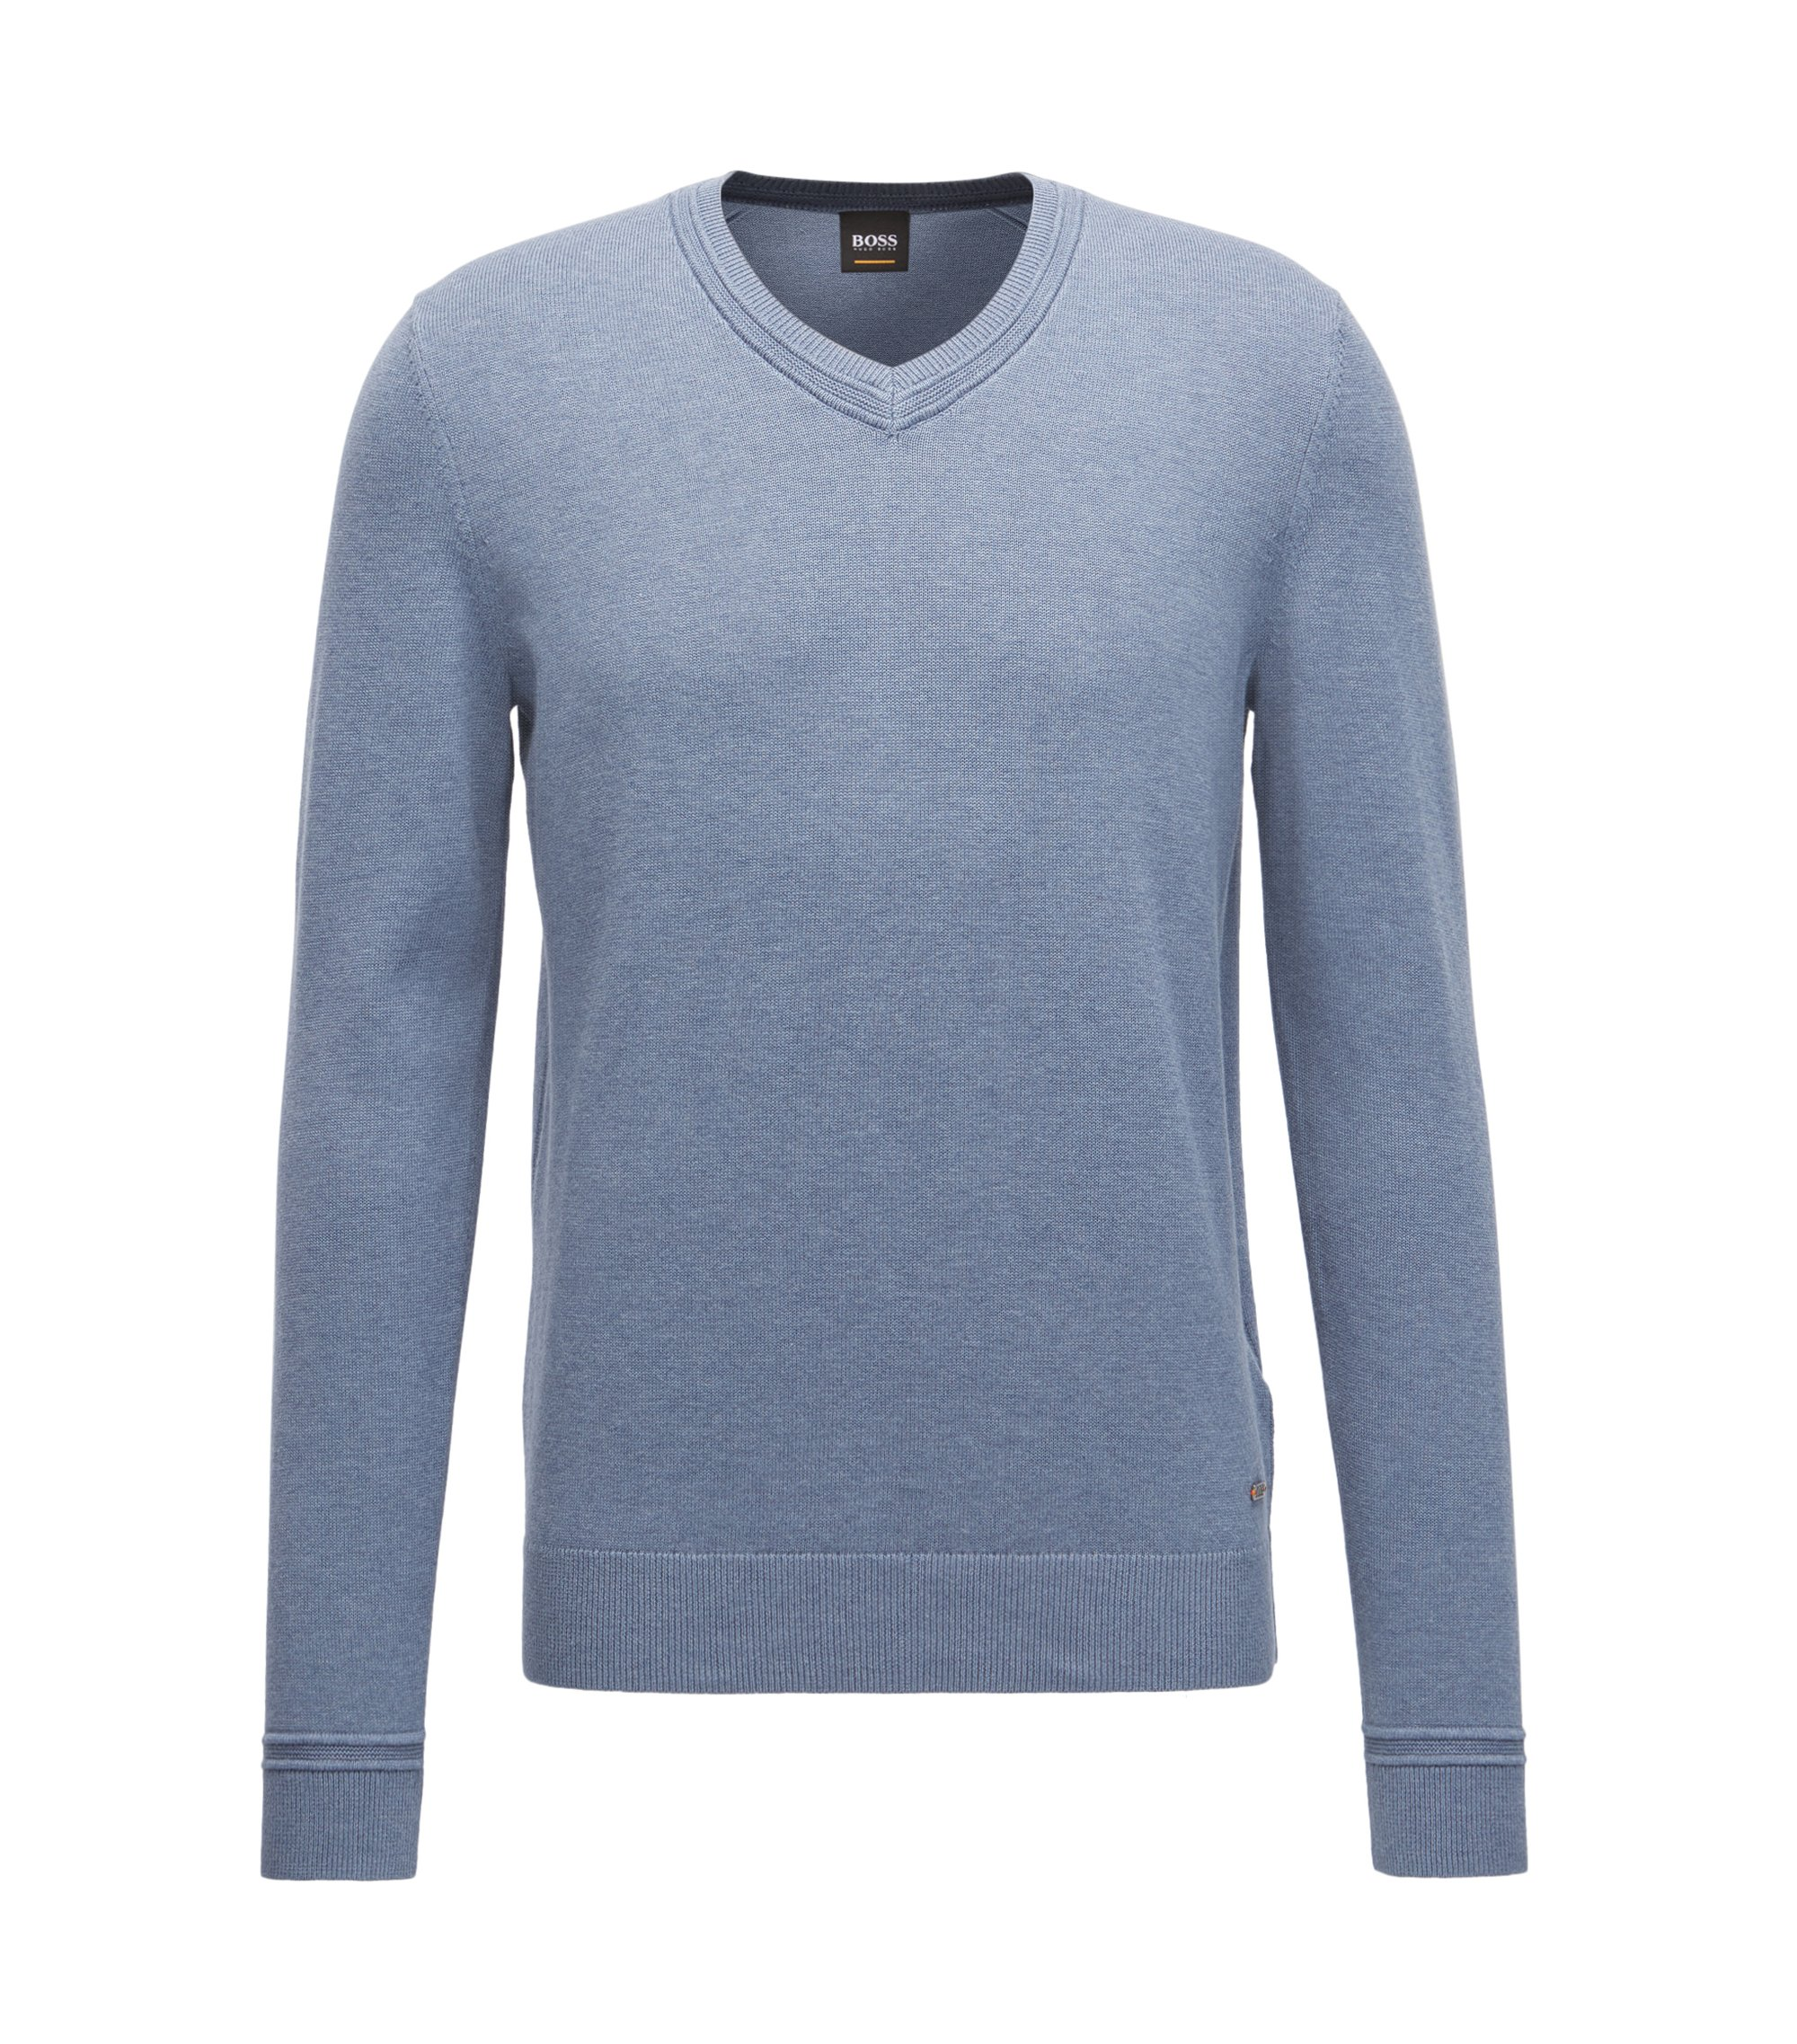 V-neck cotton-blend sweater with textured accents, Blue